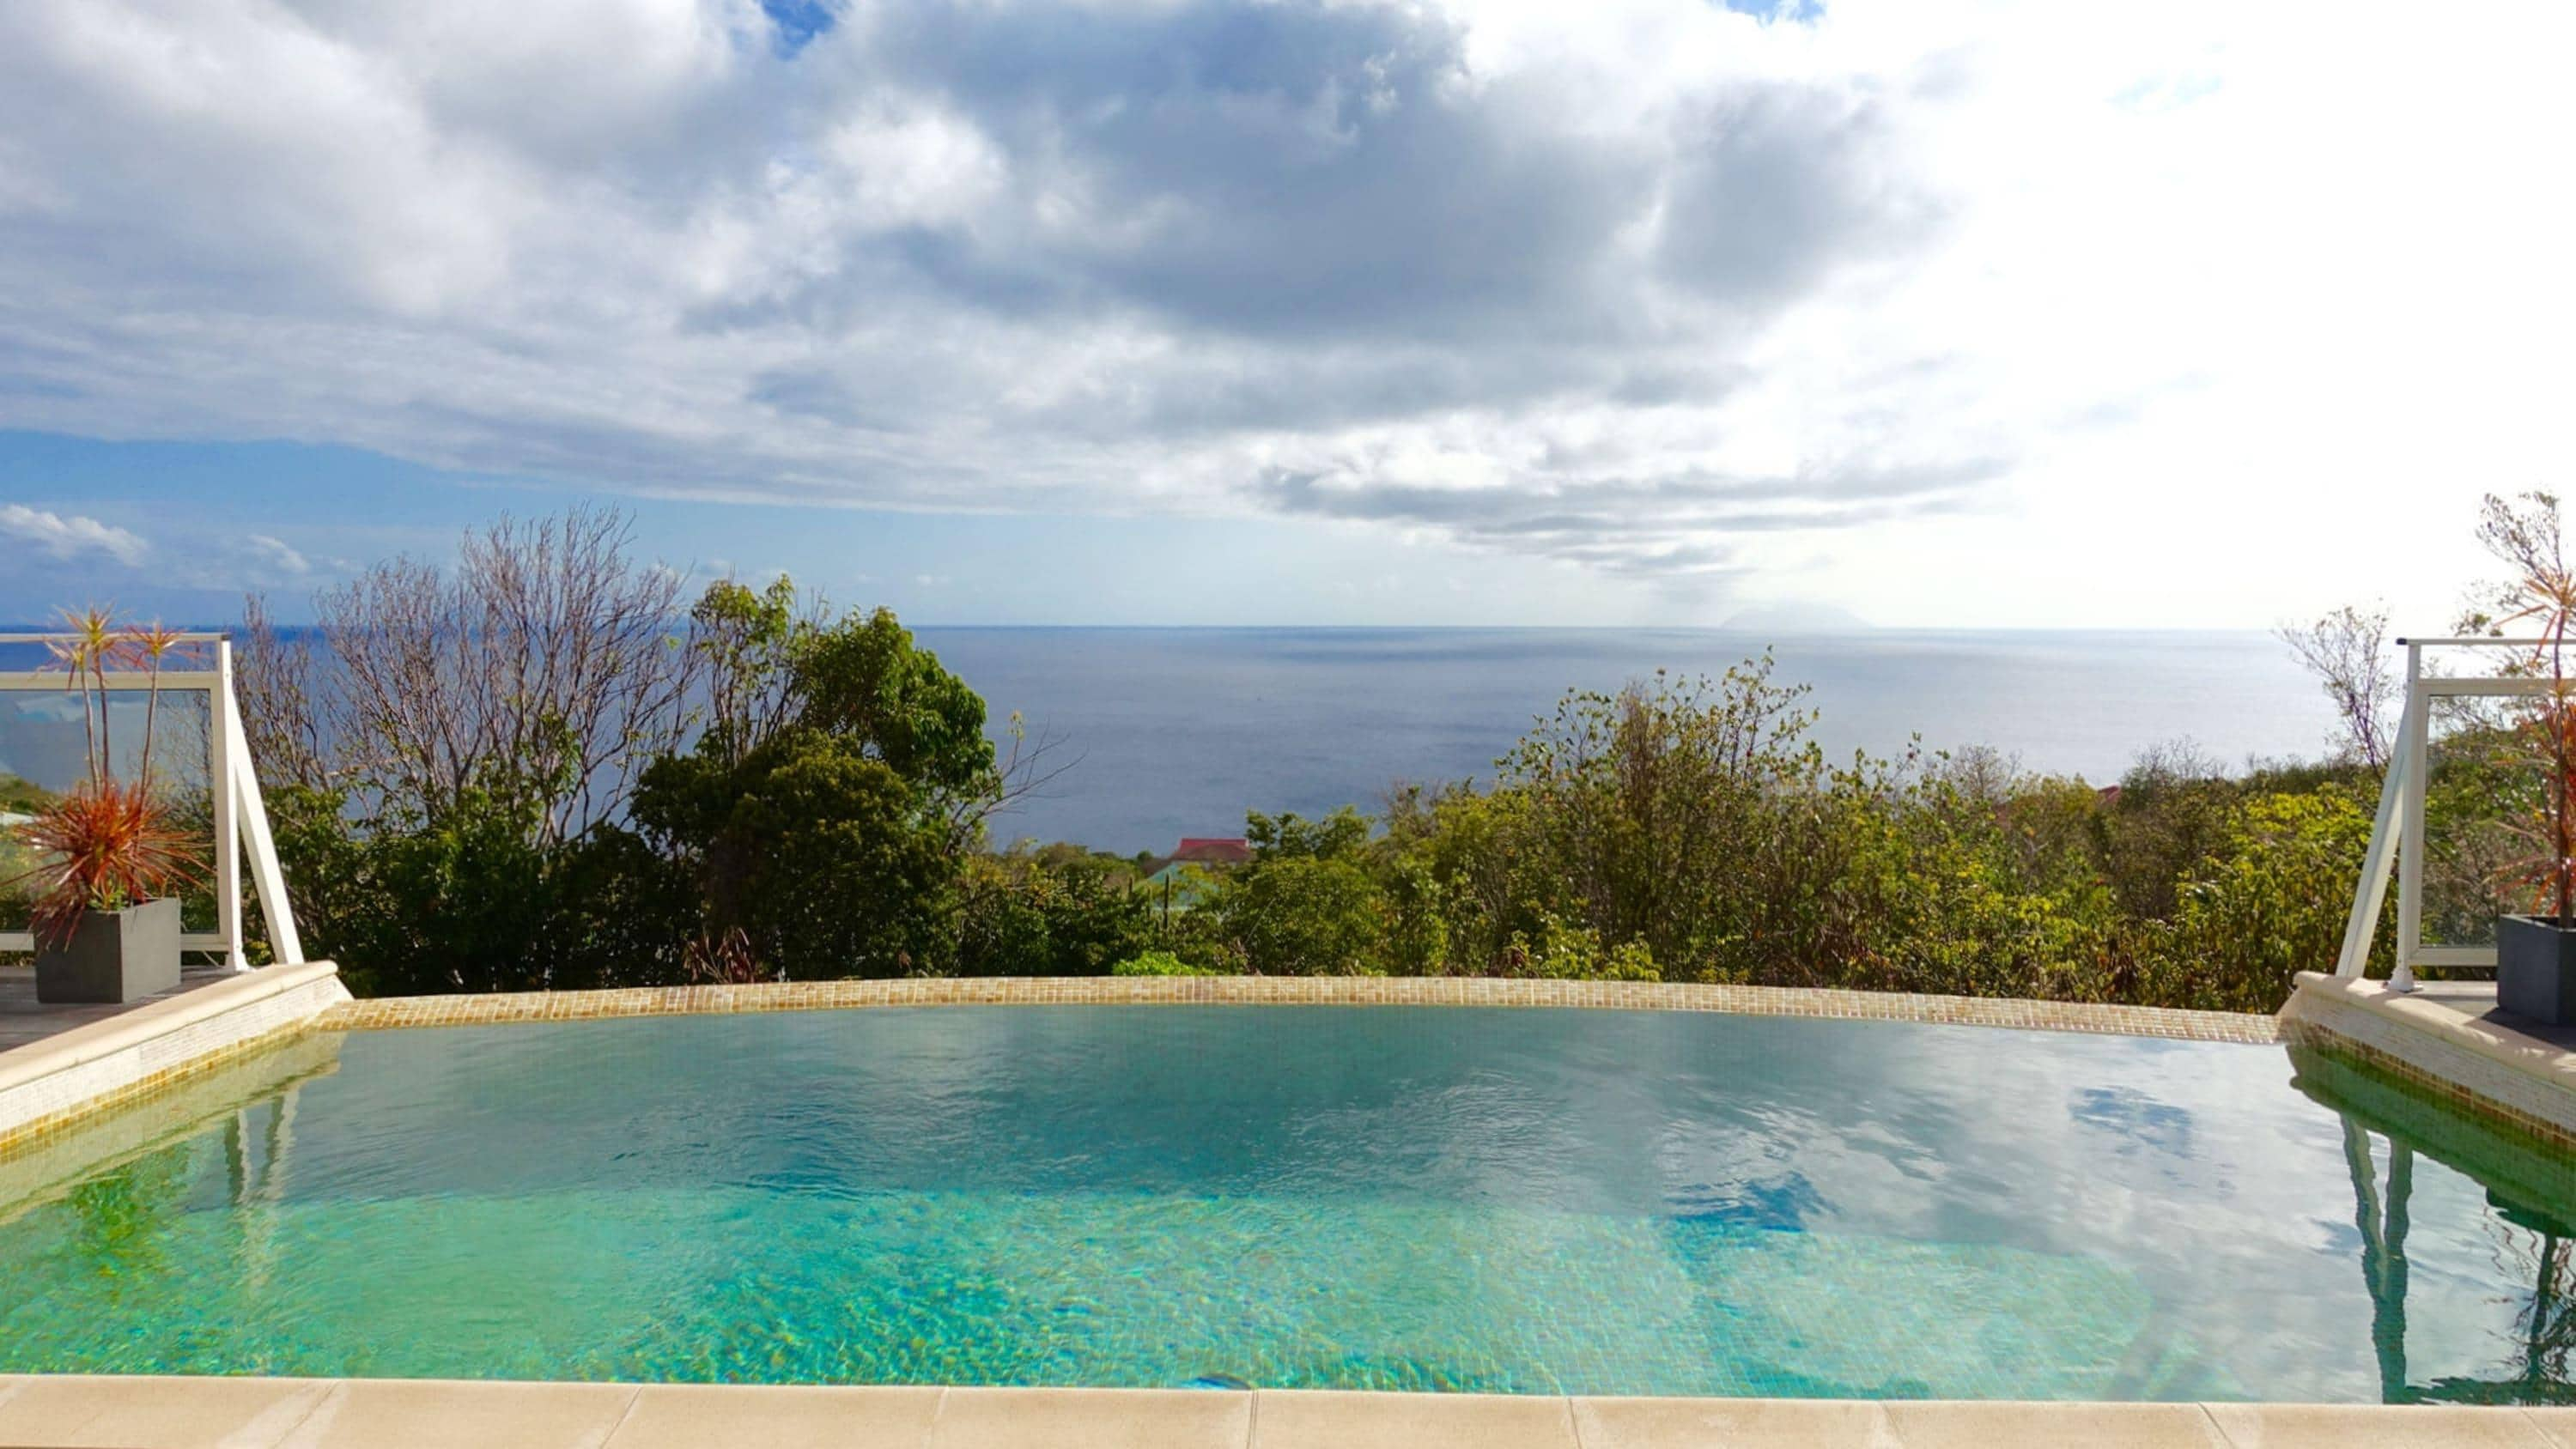 Property Image 2 - Lurin Heights Villa with Breathtaking Ocean Views